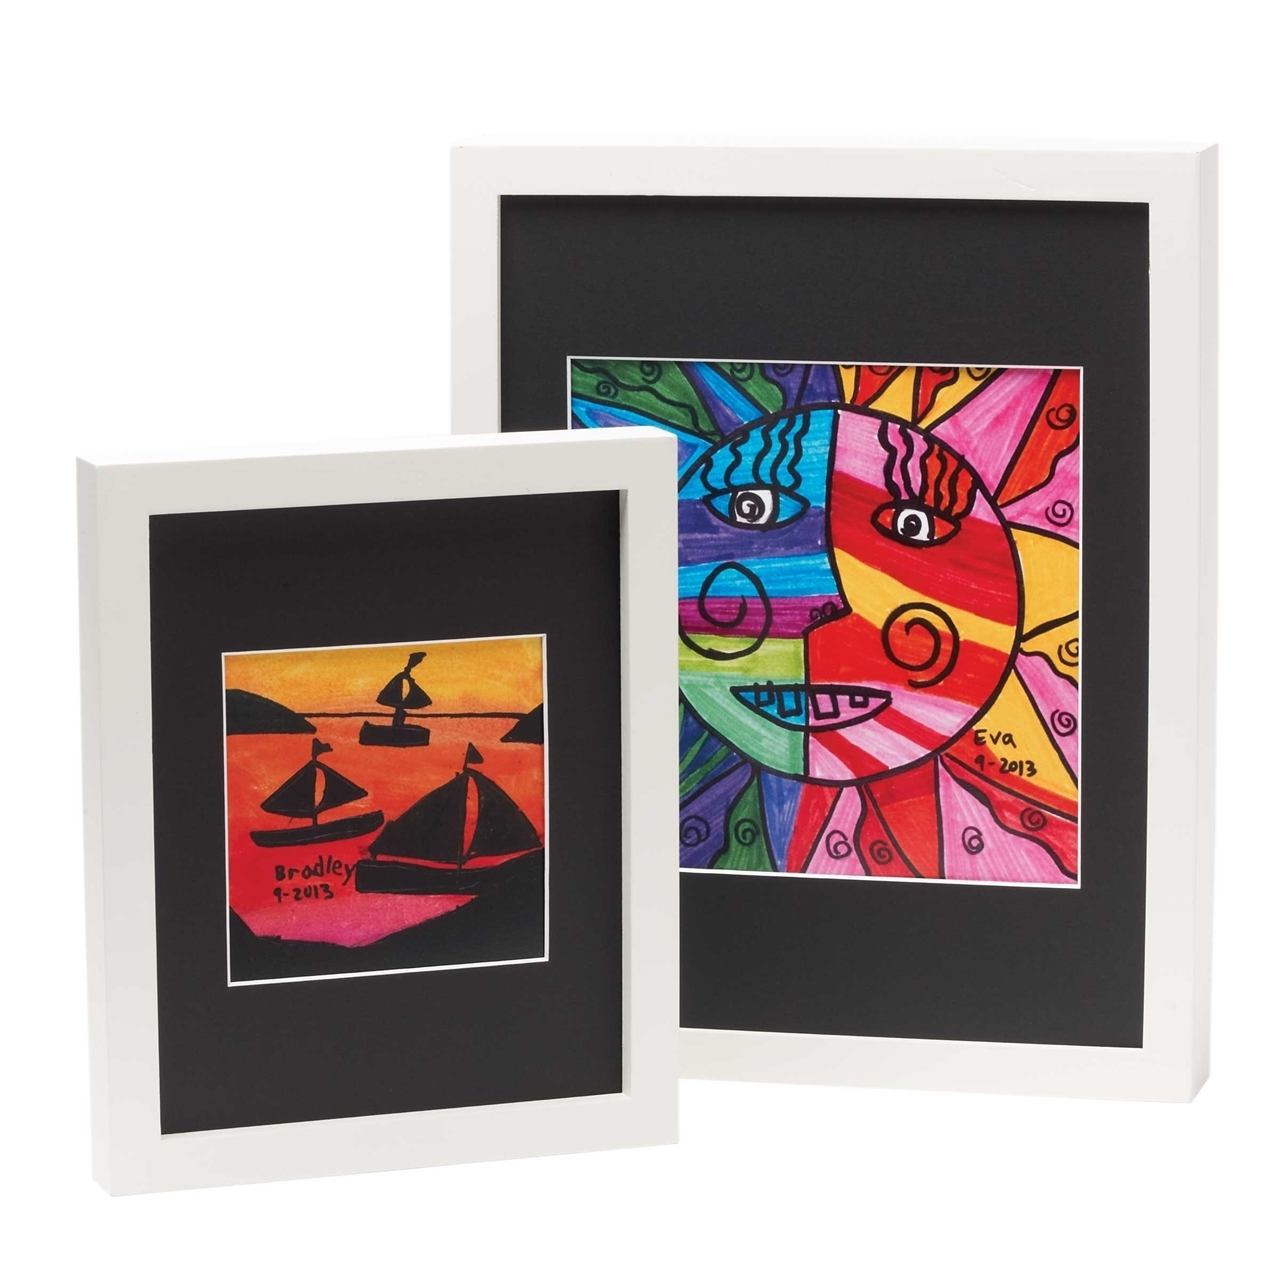 Square 1 Art::matted Print Pertaining To 2017 Framed And Matted Art Prints (View 9 of 15)